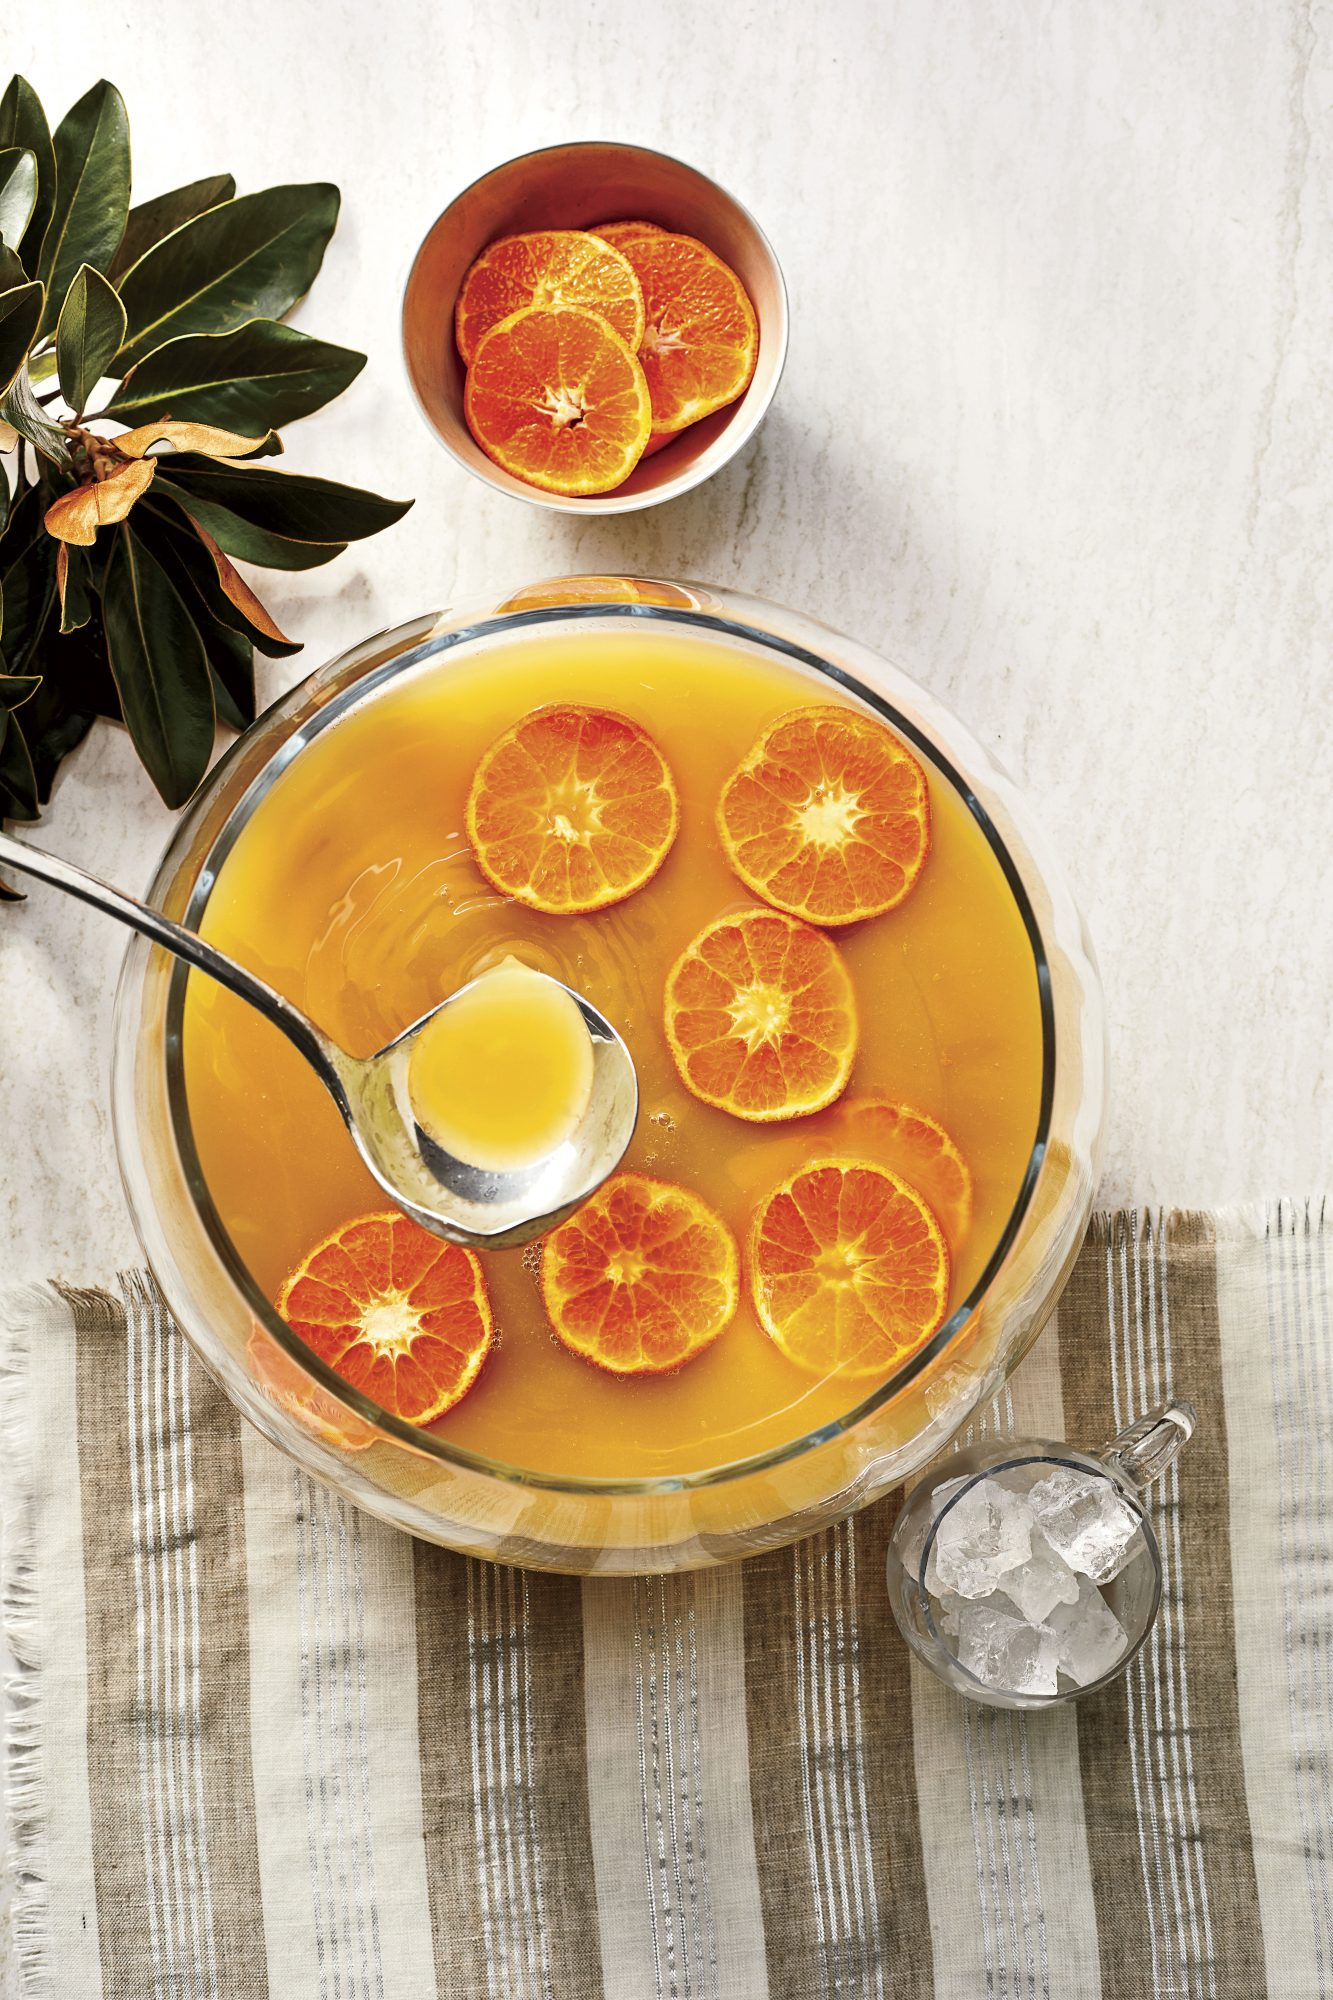 Spicy Bourbon-Citrus Punch Recipe Paige Grandjean